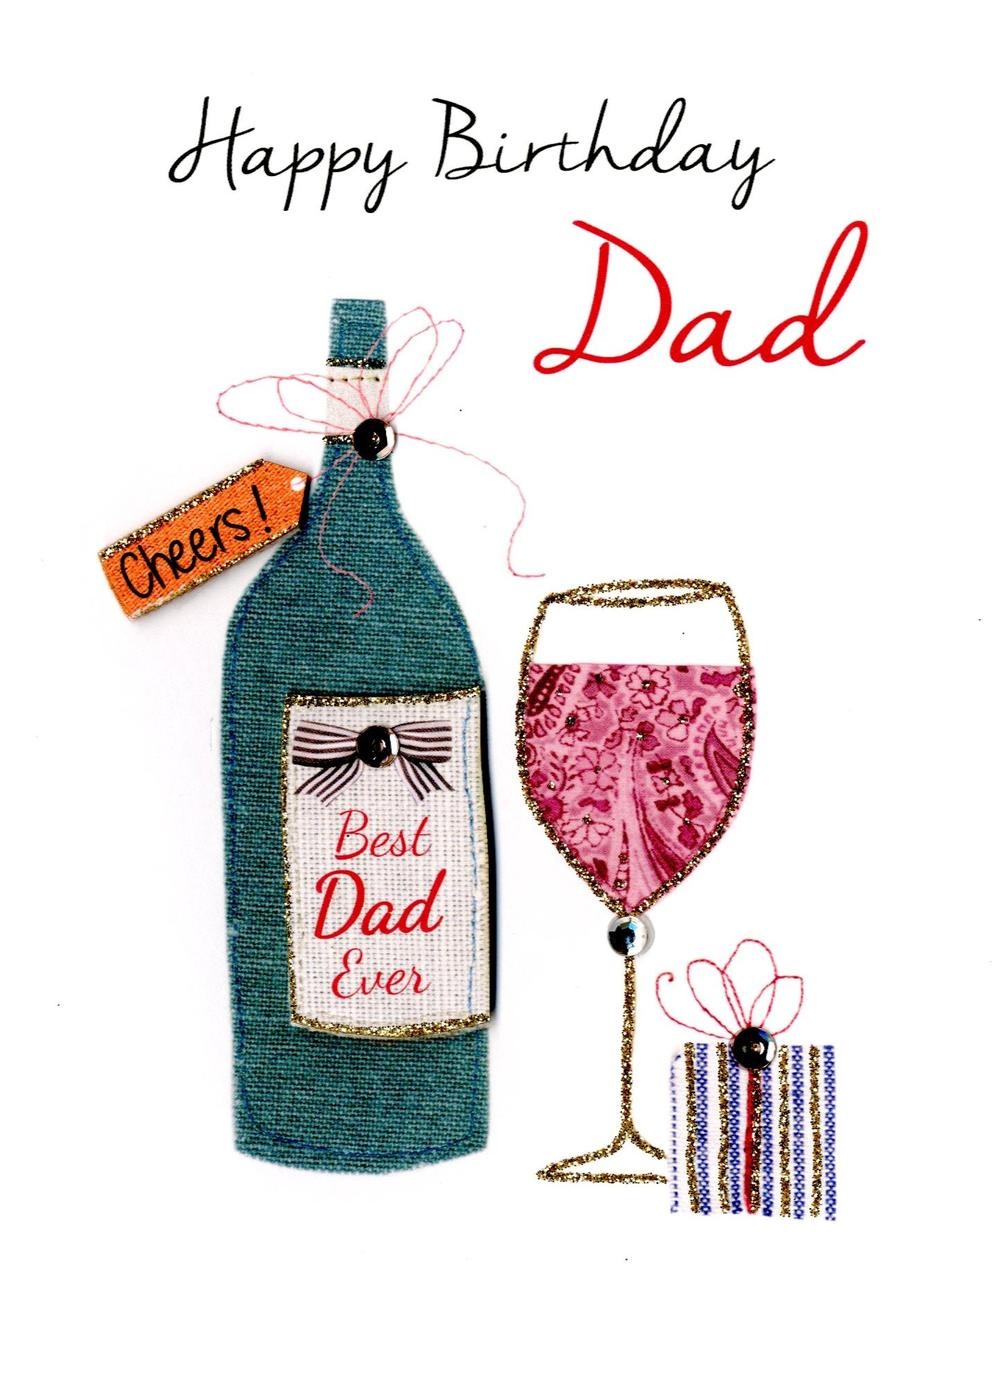 Best Dad Ever Happy Birthday Greeting Card